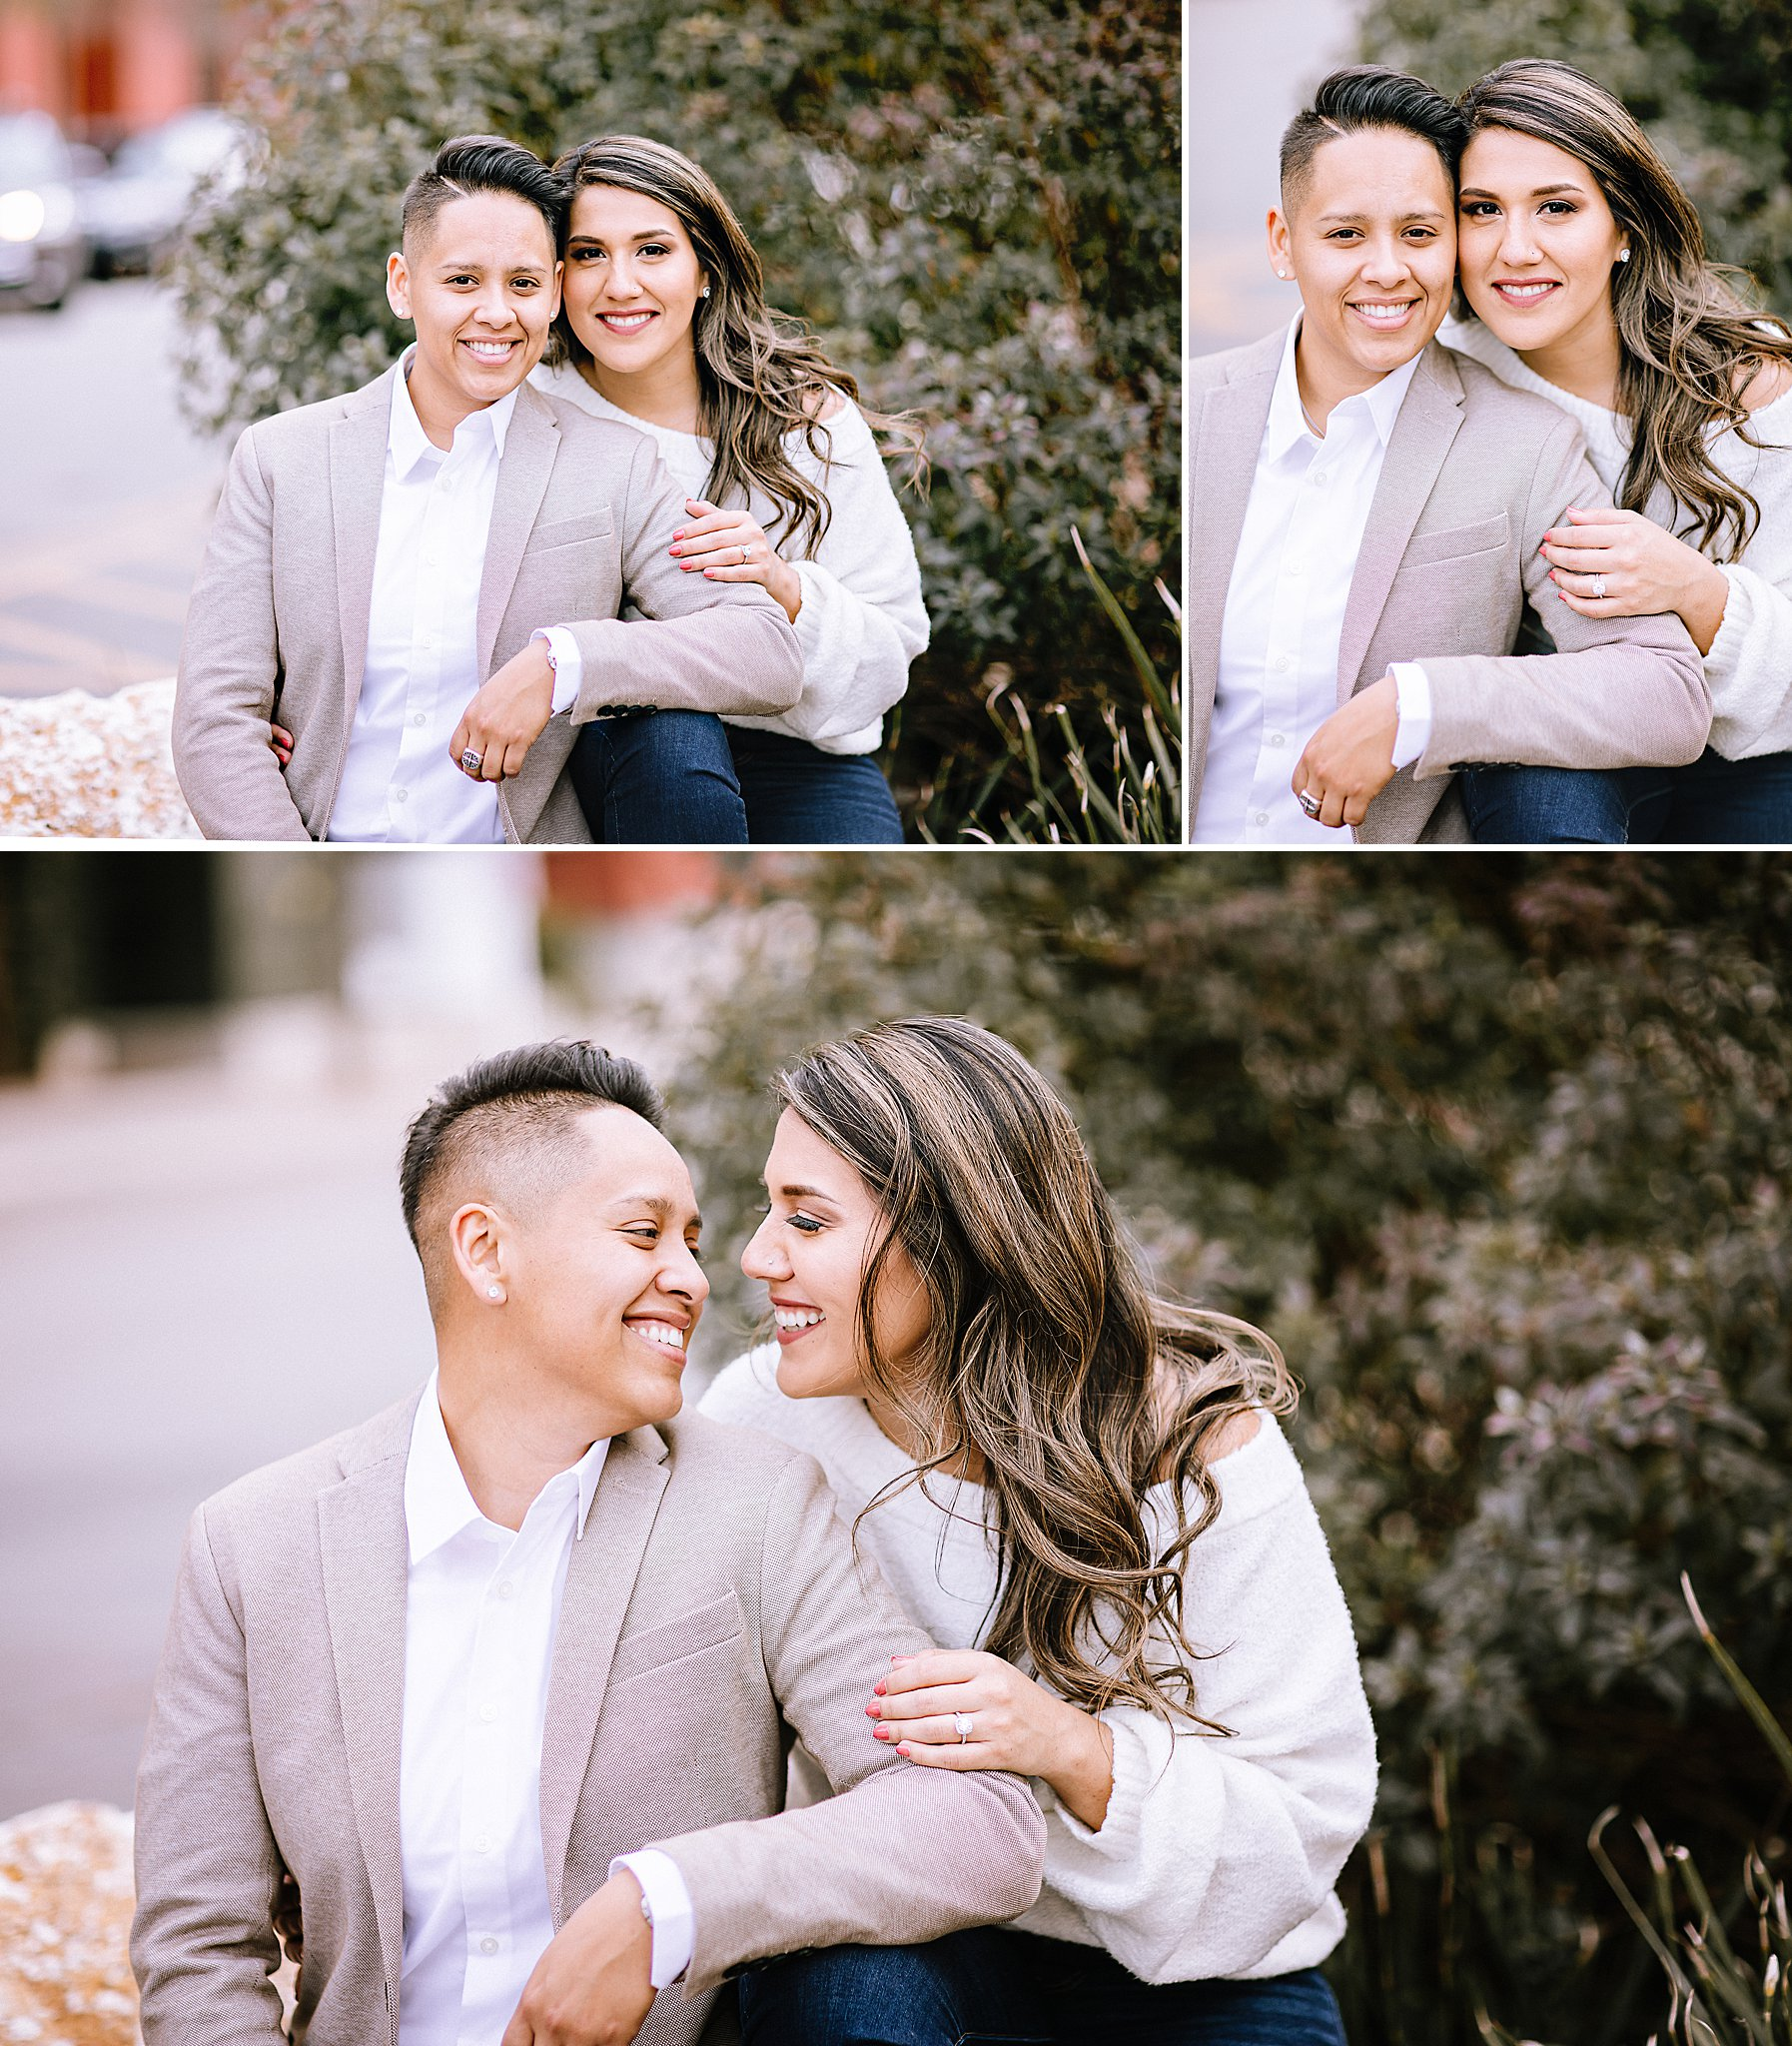 Carly-Barton-Photography-Texas-Engagement-Photographer-The-Historic-Pearl-San-Antonio_0007.jpg